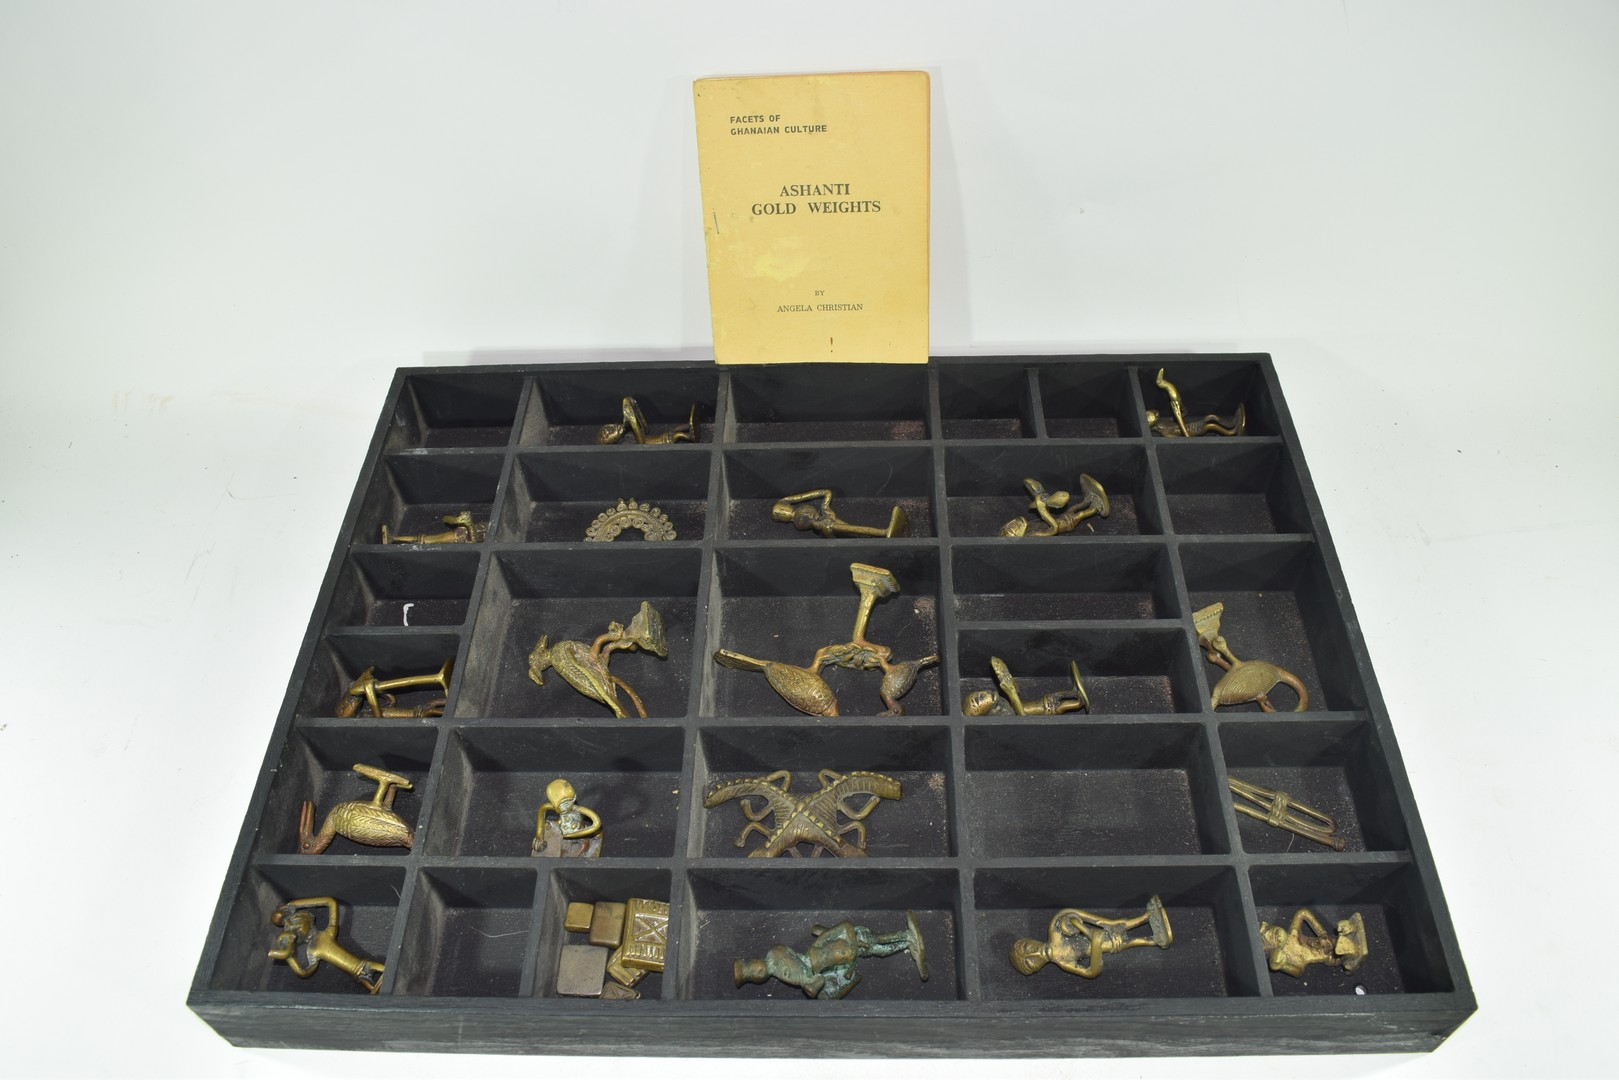 Collection of Ghanaian Ashanti figurative gold weights